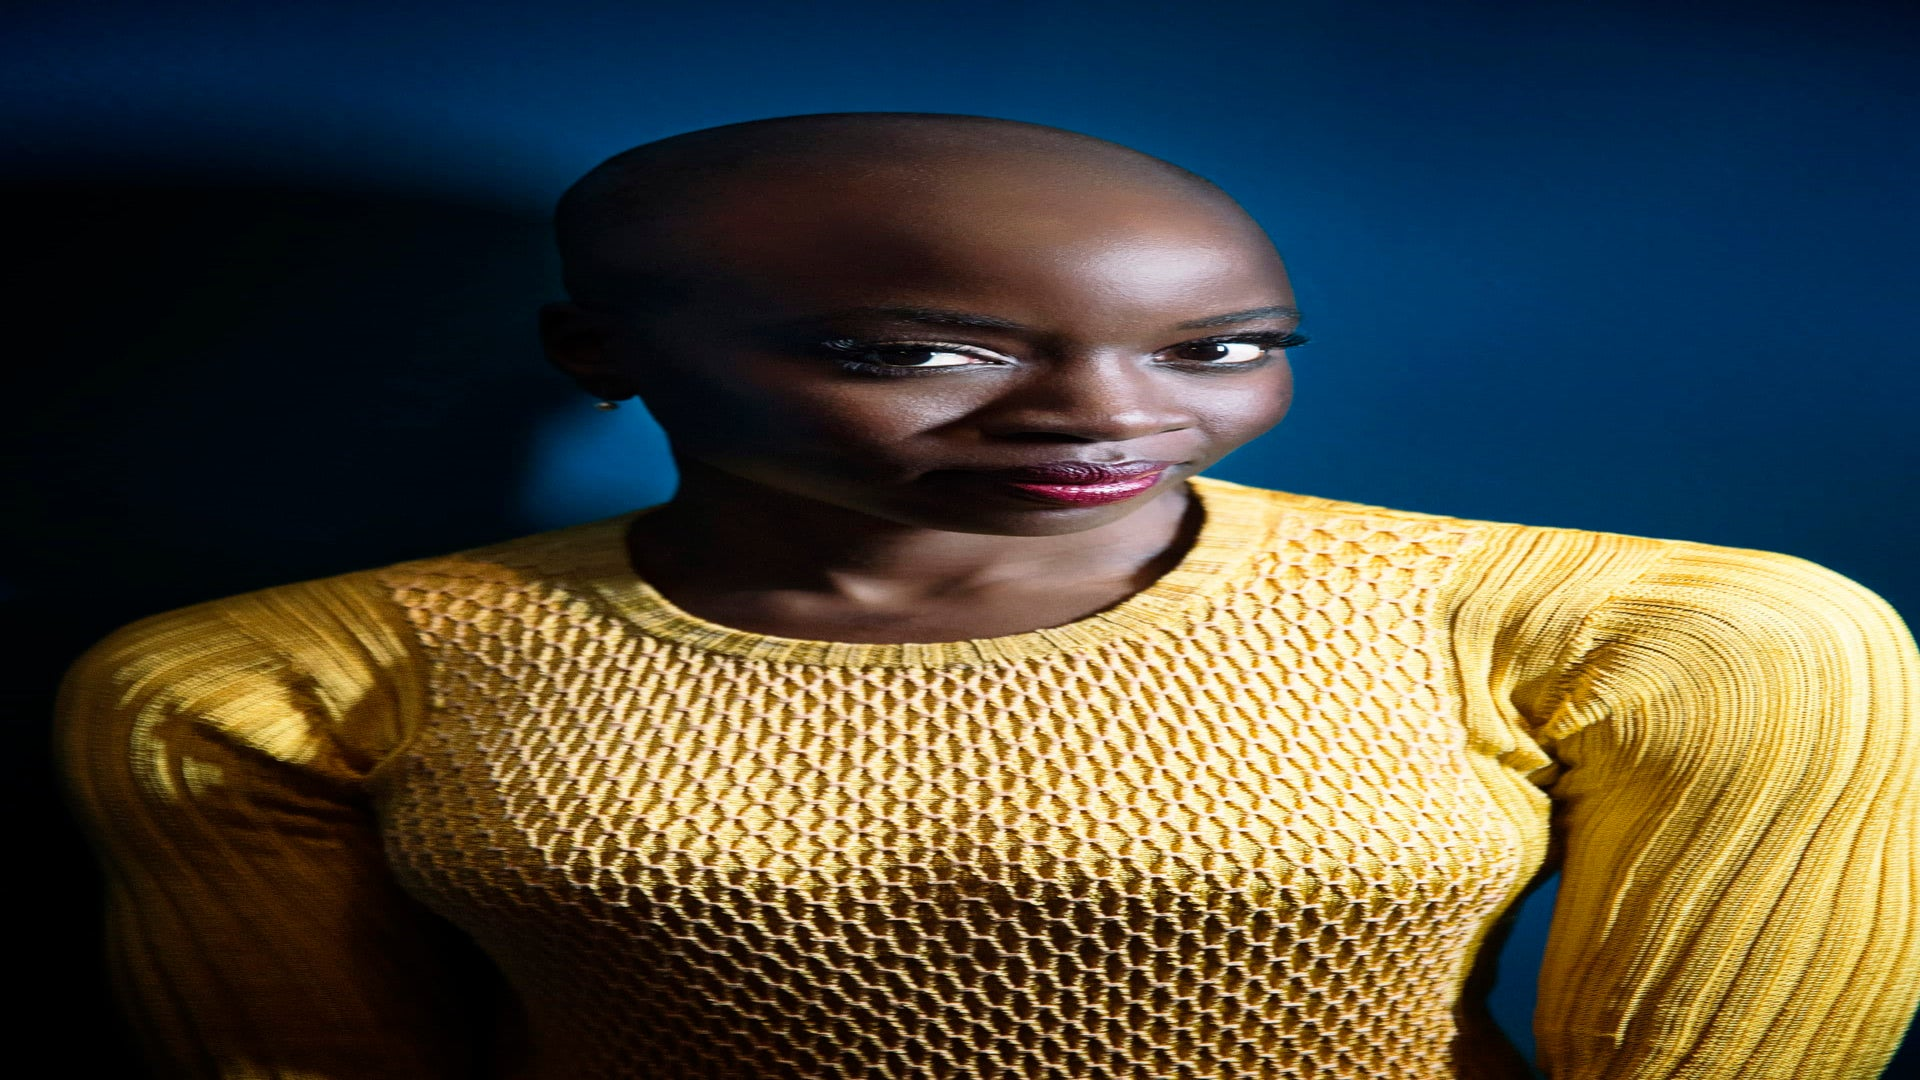 Danai Gurira Shares How Growing Up In Zimbabwe Fueled Her Support Of The Work To Eradicate HIV/AIDS